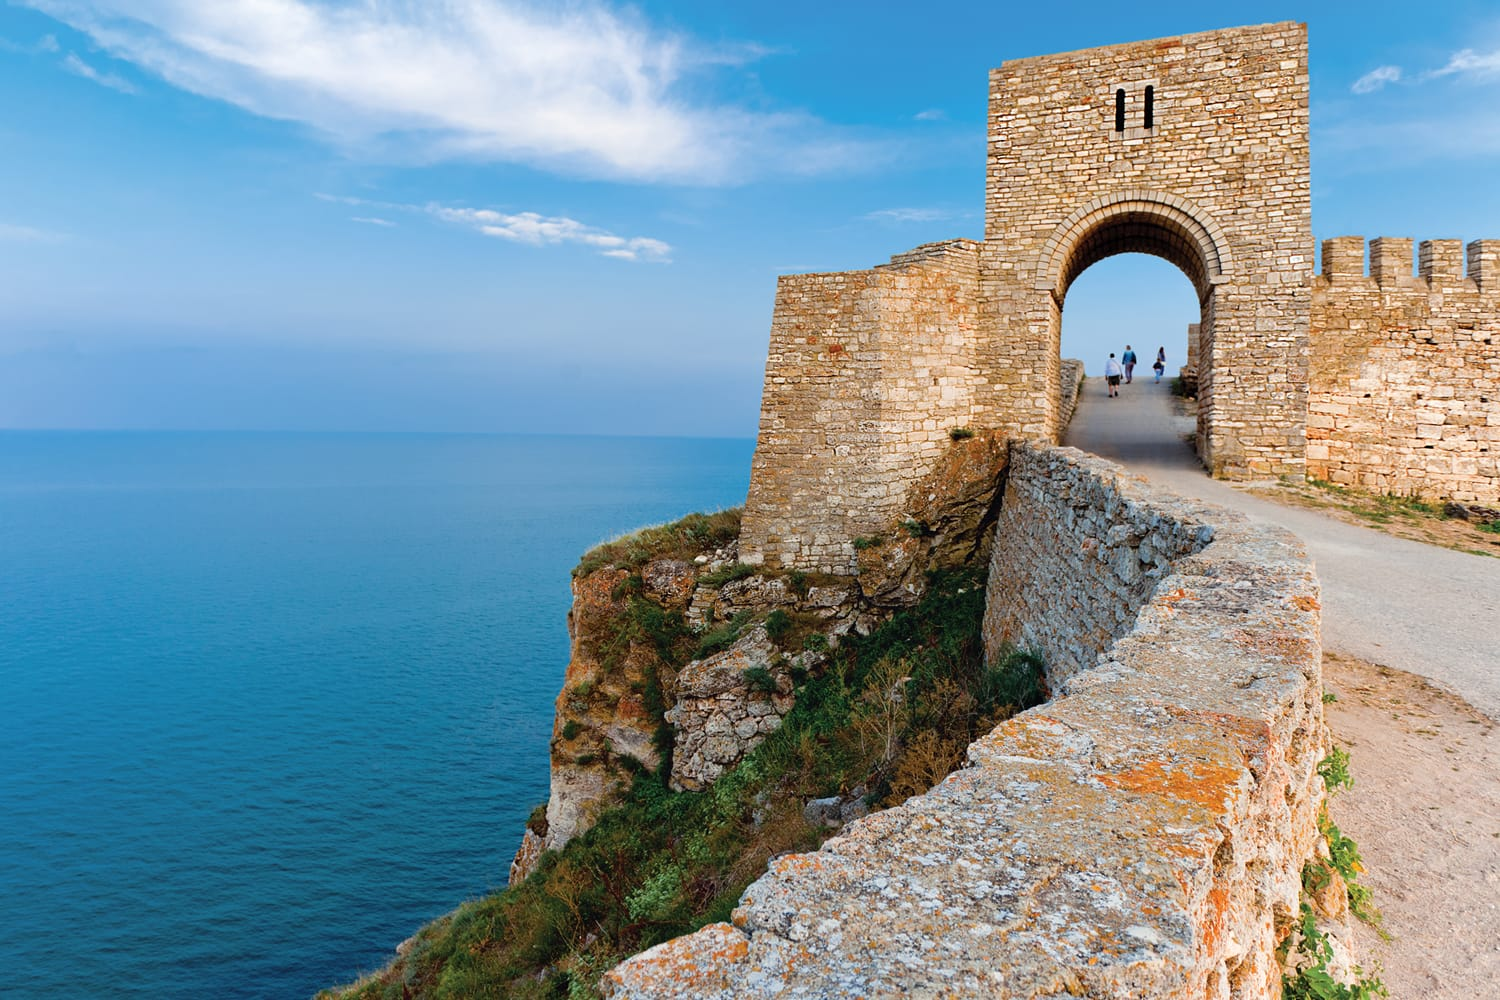 Kaliakra - long and narrow headland in the Southern Dobruja region of the northern Bulgarian Black Sea Coast, 60 km northeast of Varna with an ancient stone fortress.